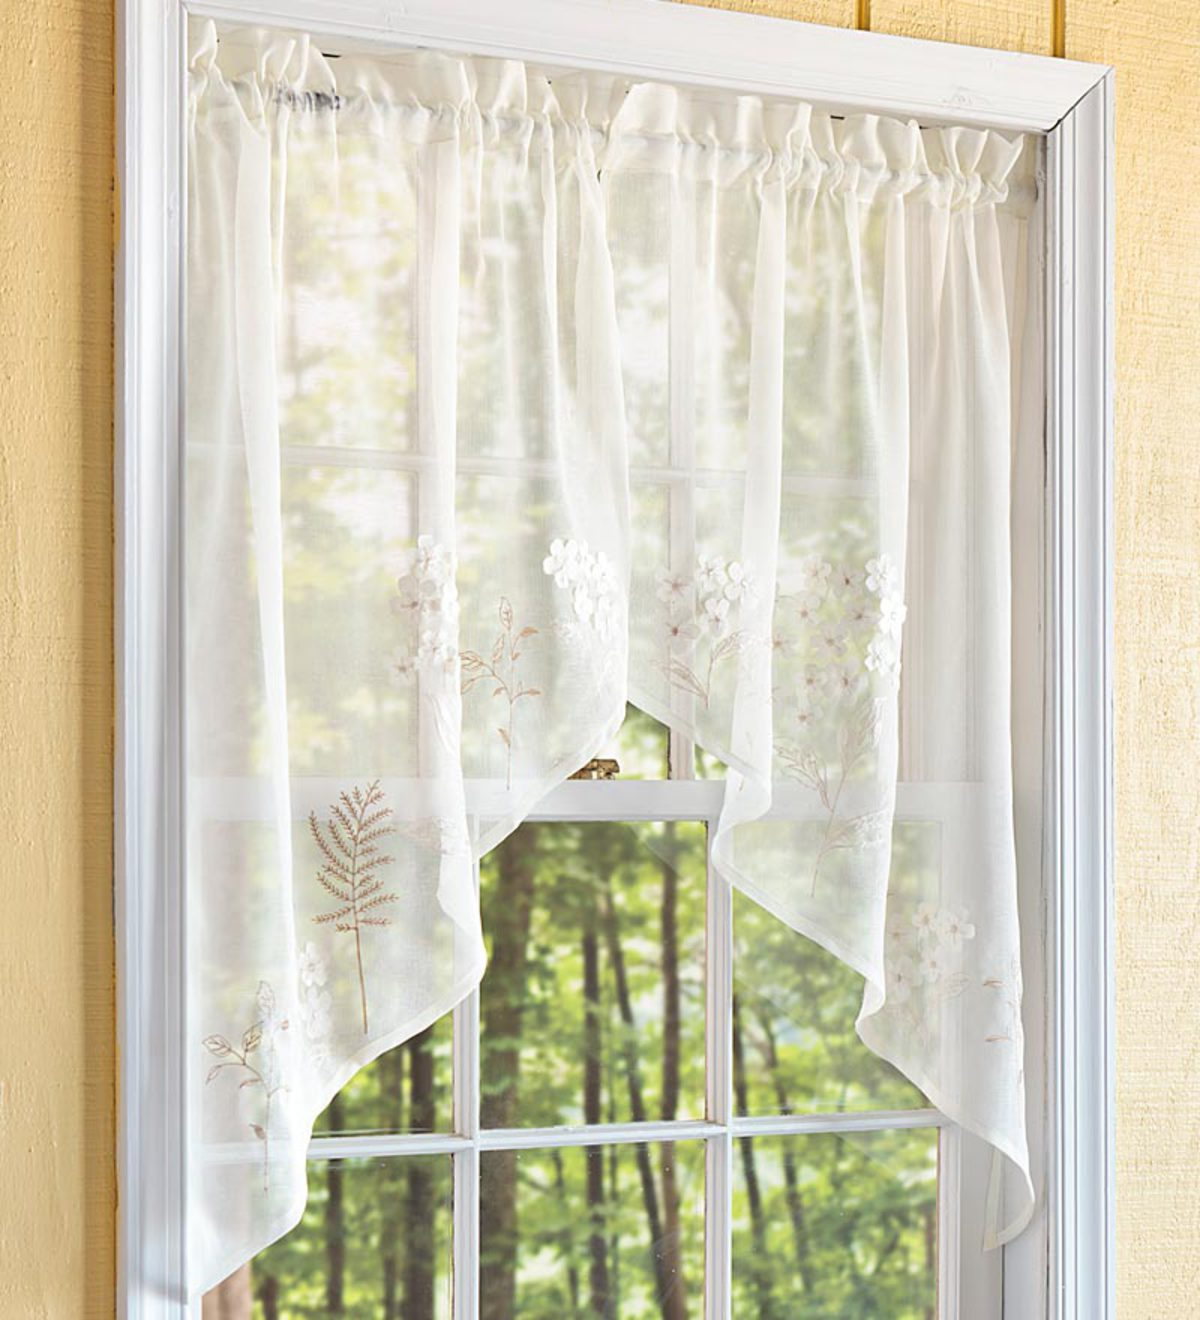 Floral Embroidered Sheer Kitchen Curtain Tiers, Swags And Valances With Favorite Embroidered Hydrangea Sheer Curtain Panels, Tiers, Valances And Swag (View 20 of 20)